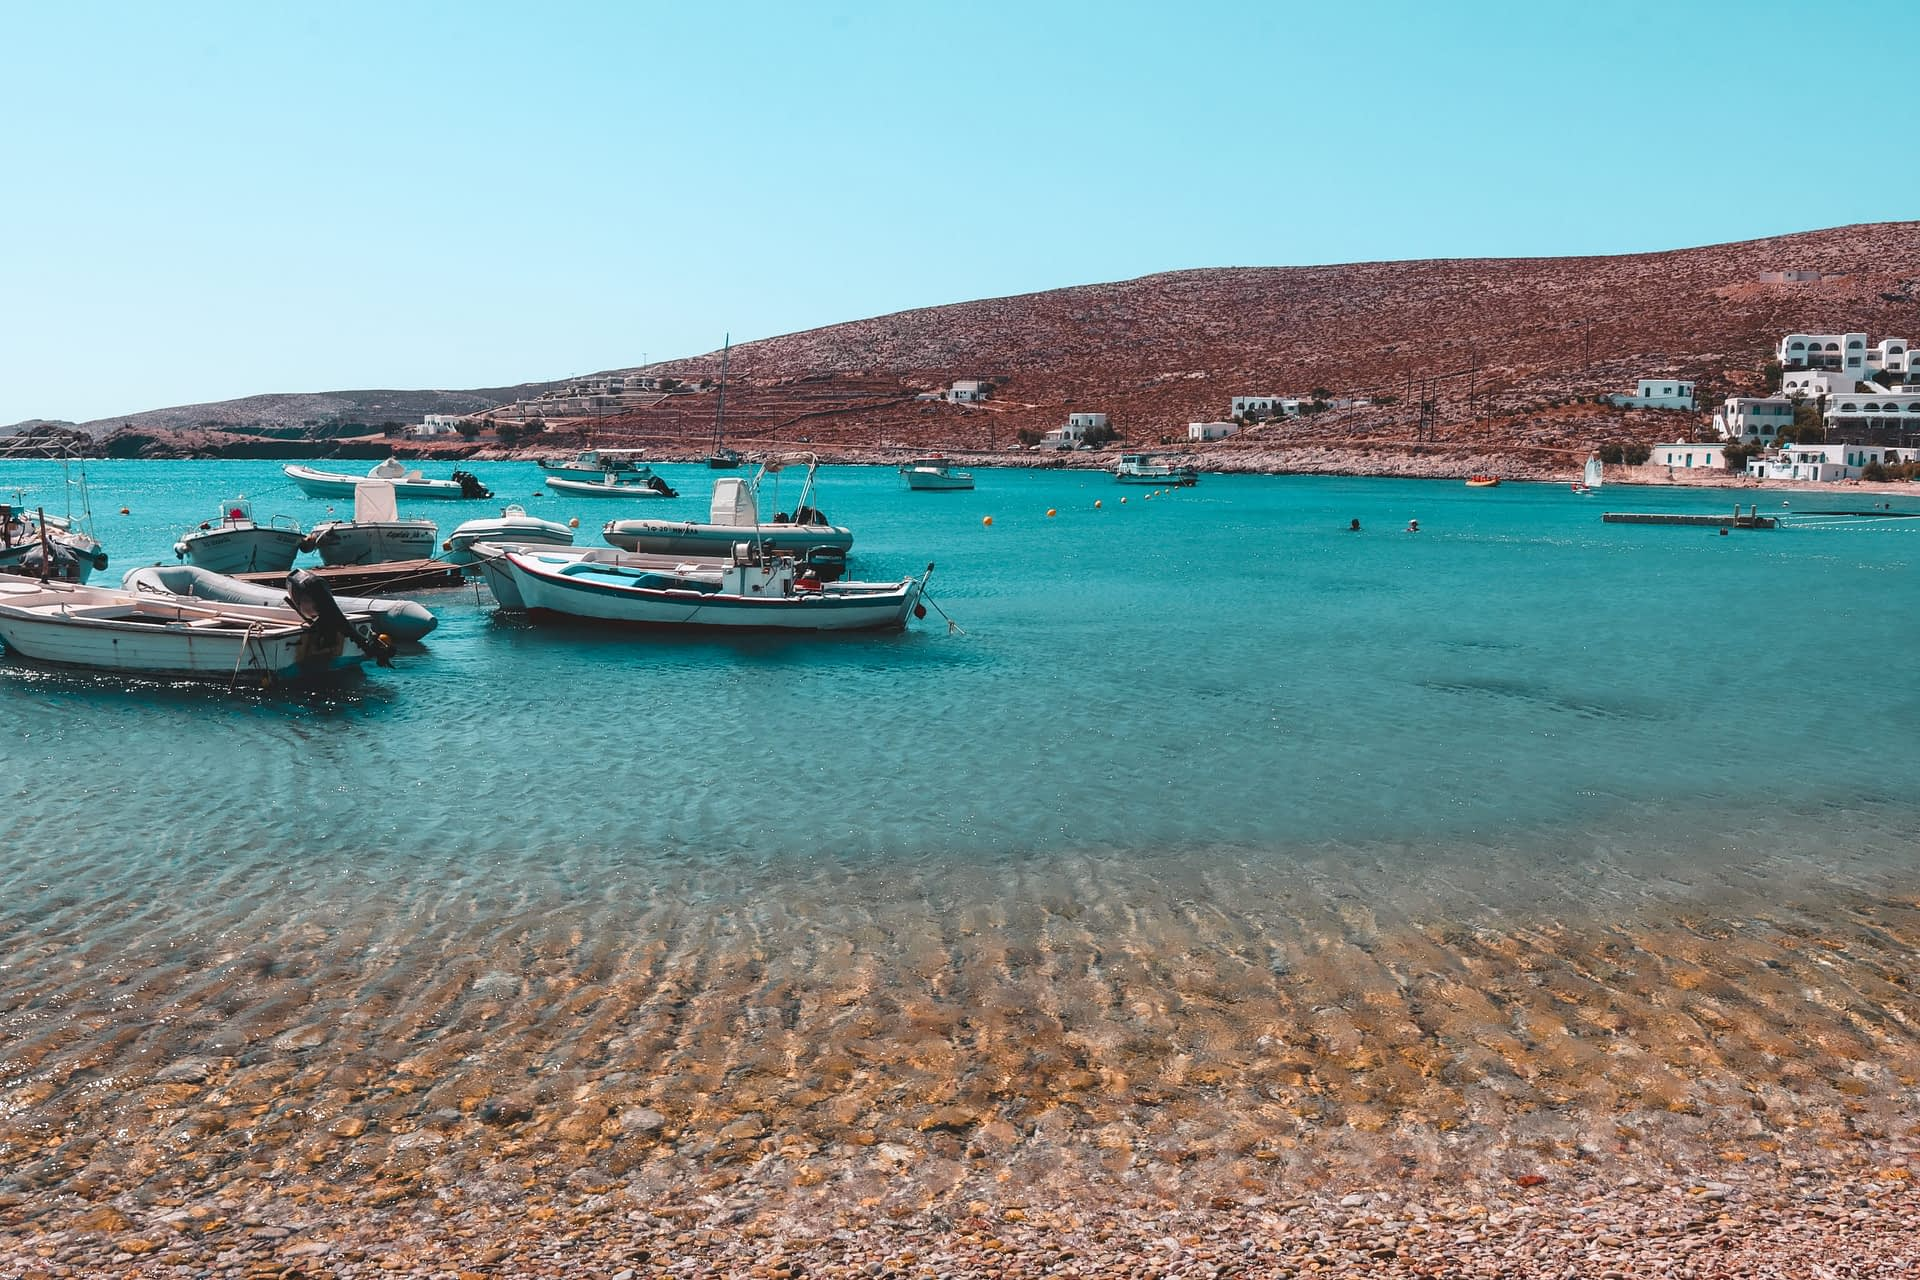 Turquoise ocean and boats. Where to go in Folegandros